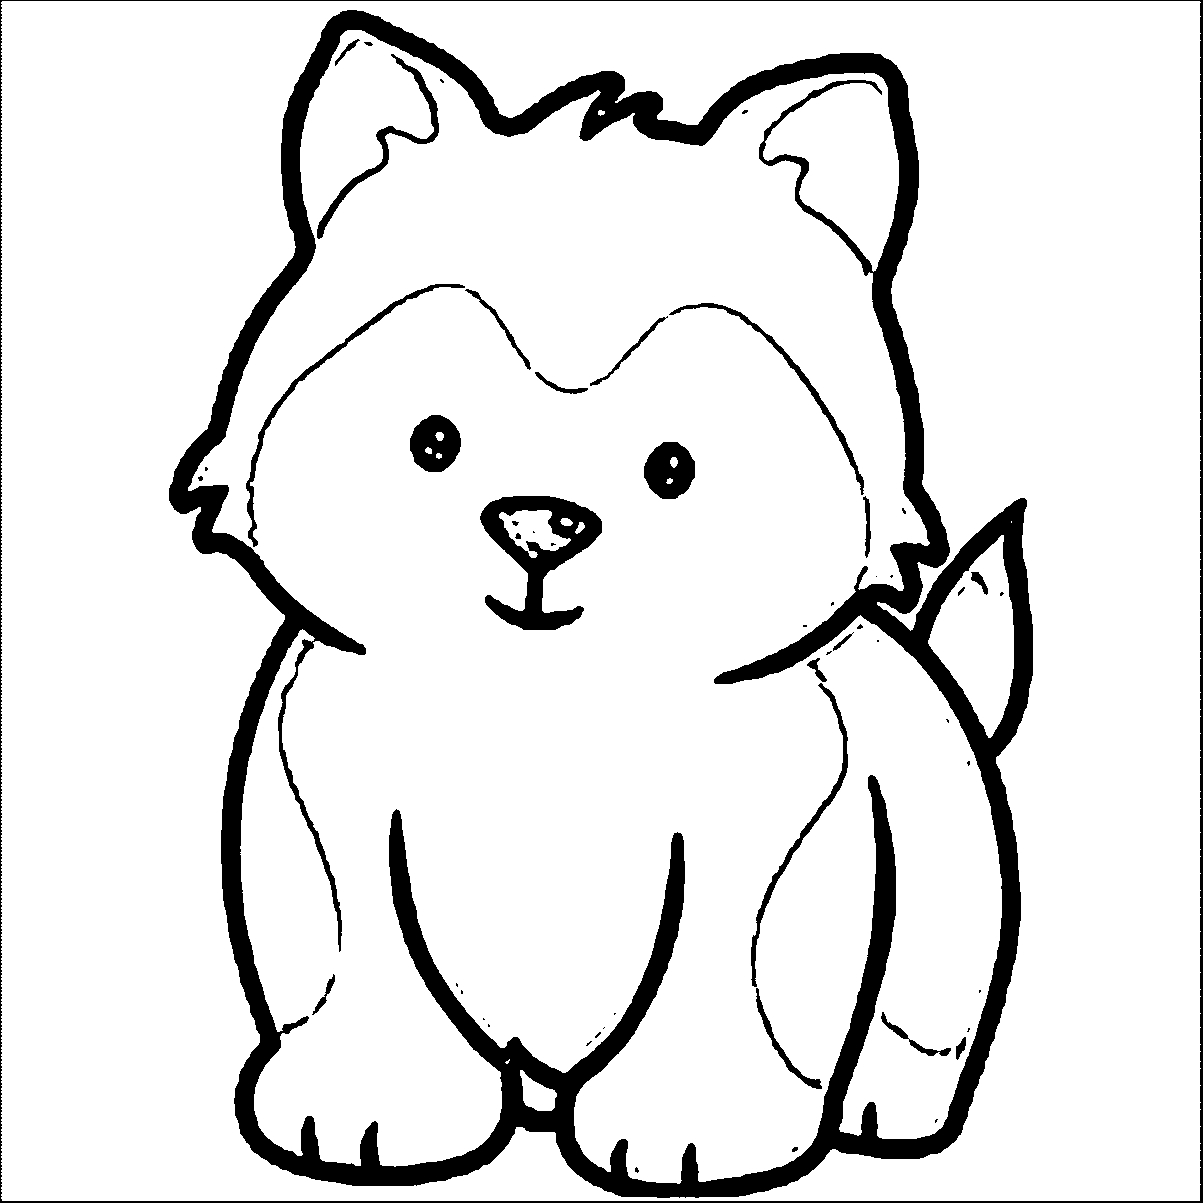 husky coloring pages - siberian husky coloring pages